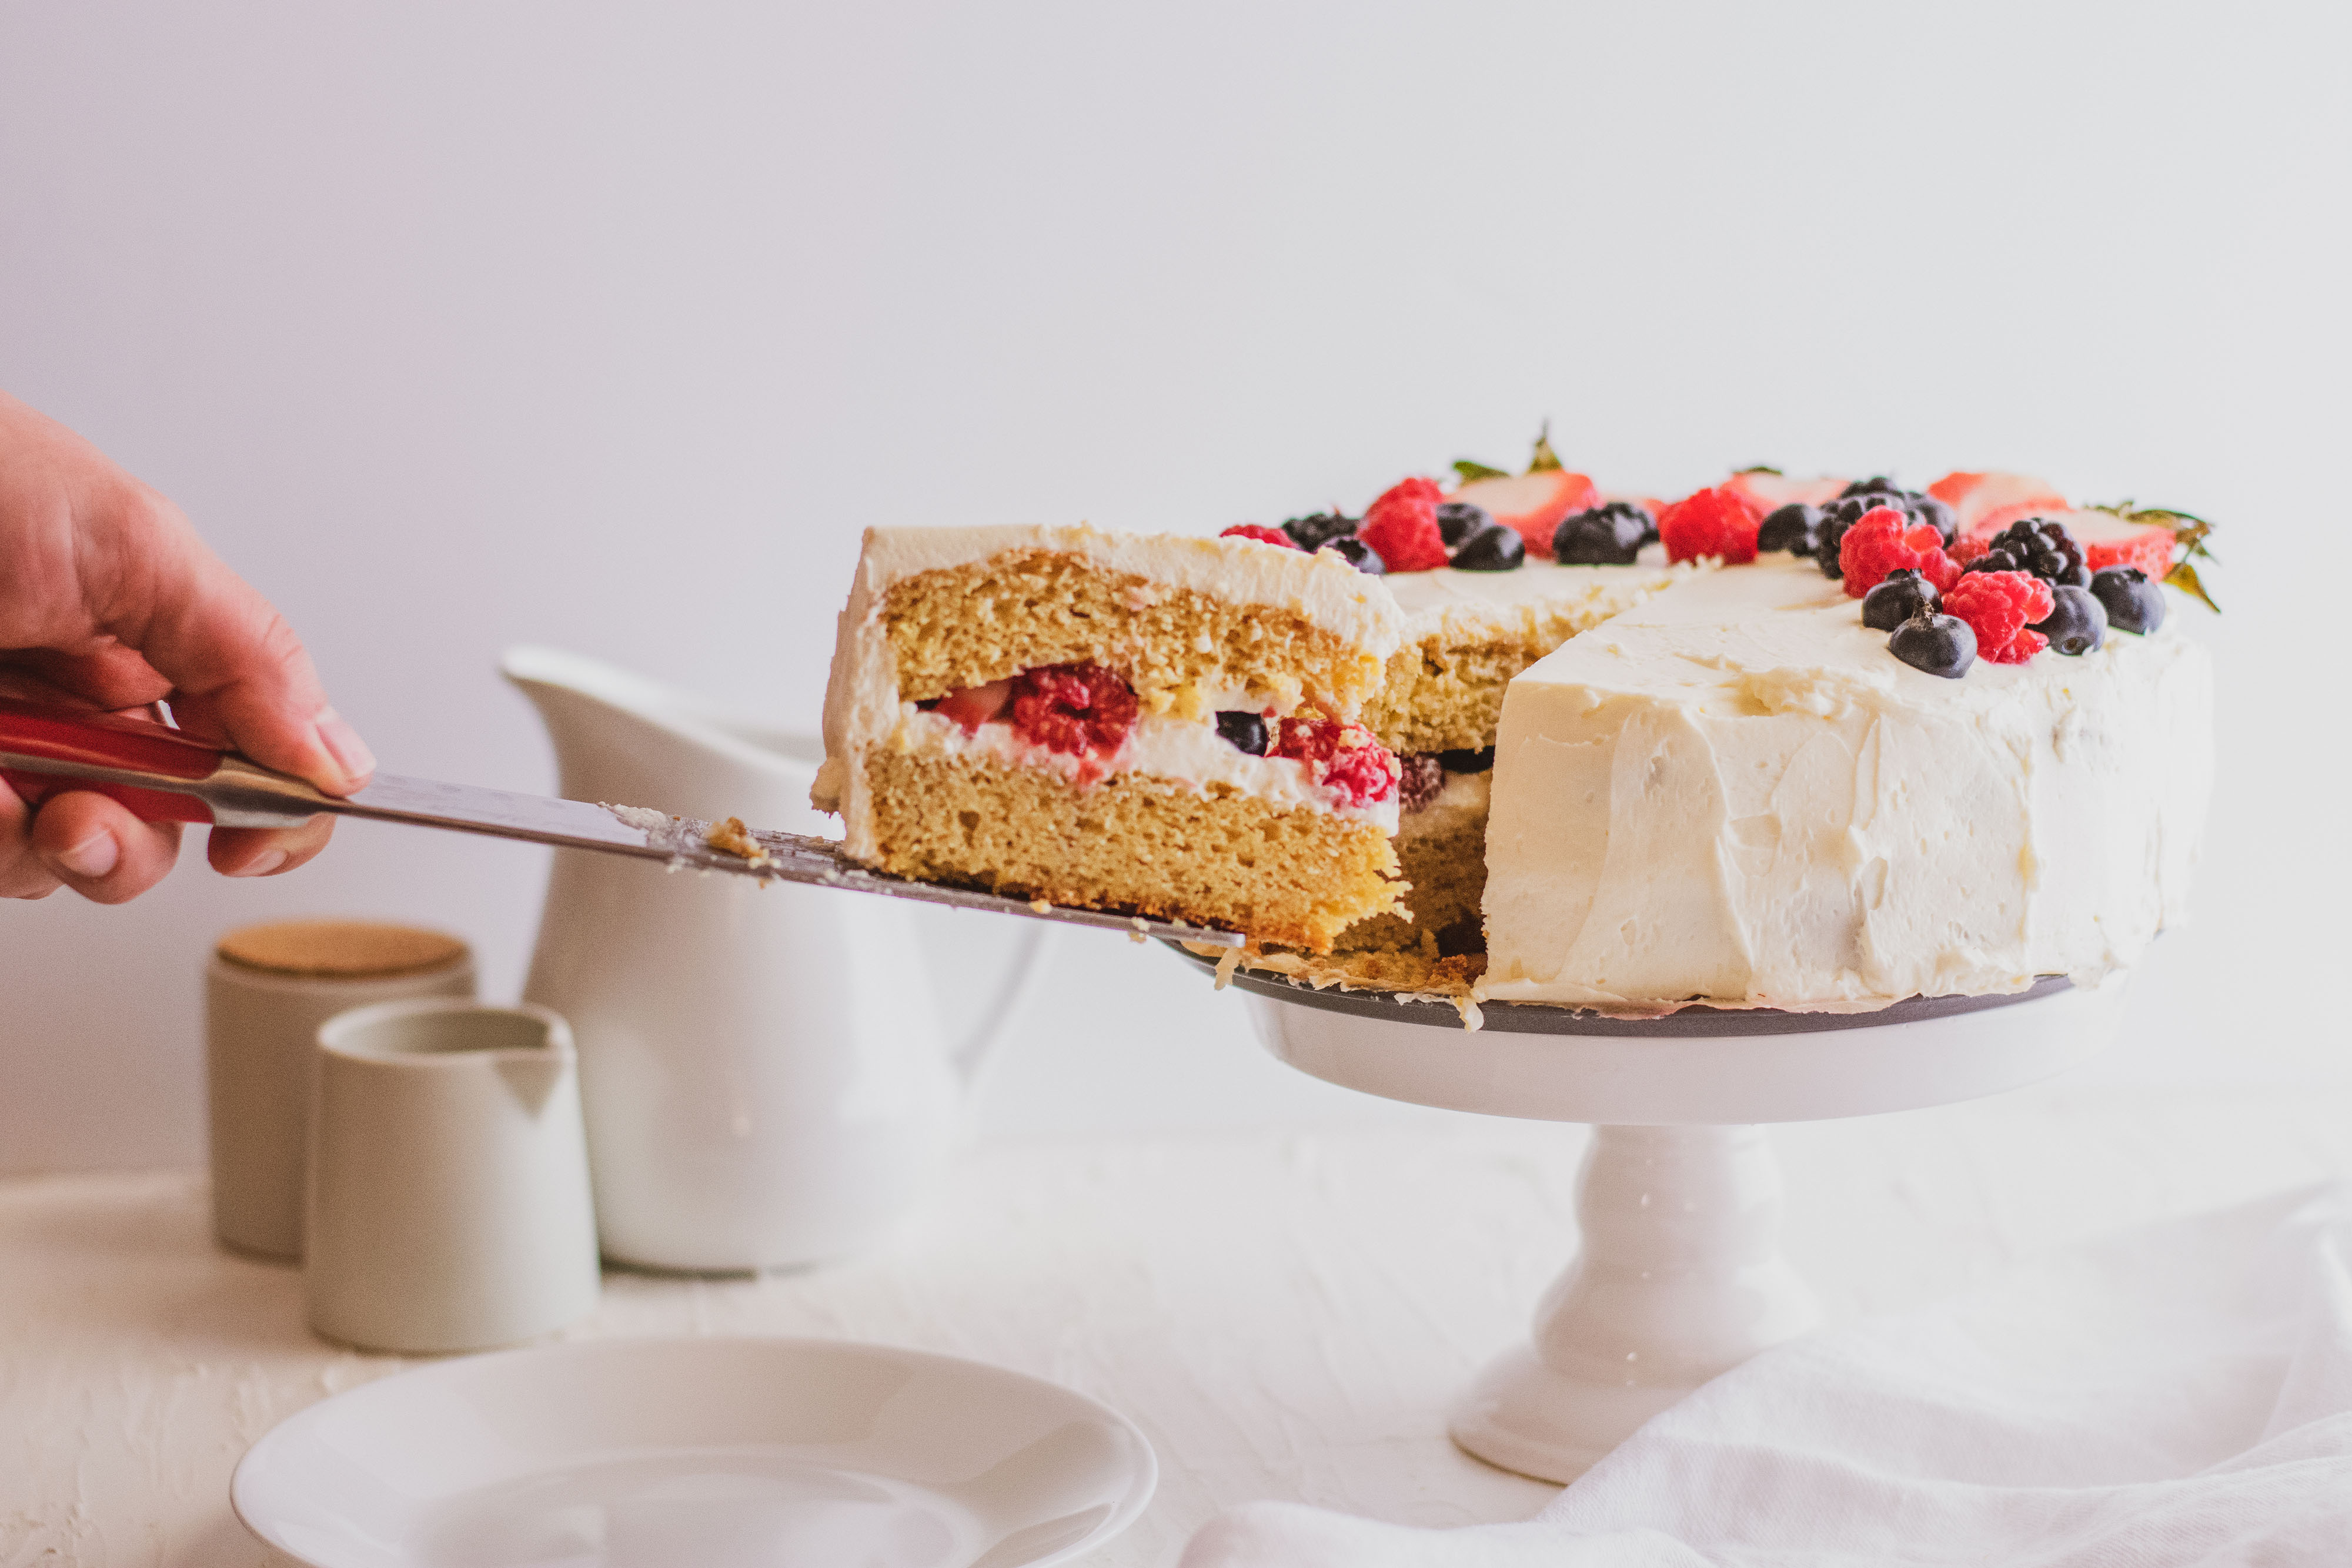 Keto Chantilly Cake a white cake with berries covering the top on a cake stand with a white background and a cut slice being pulled away